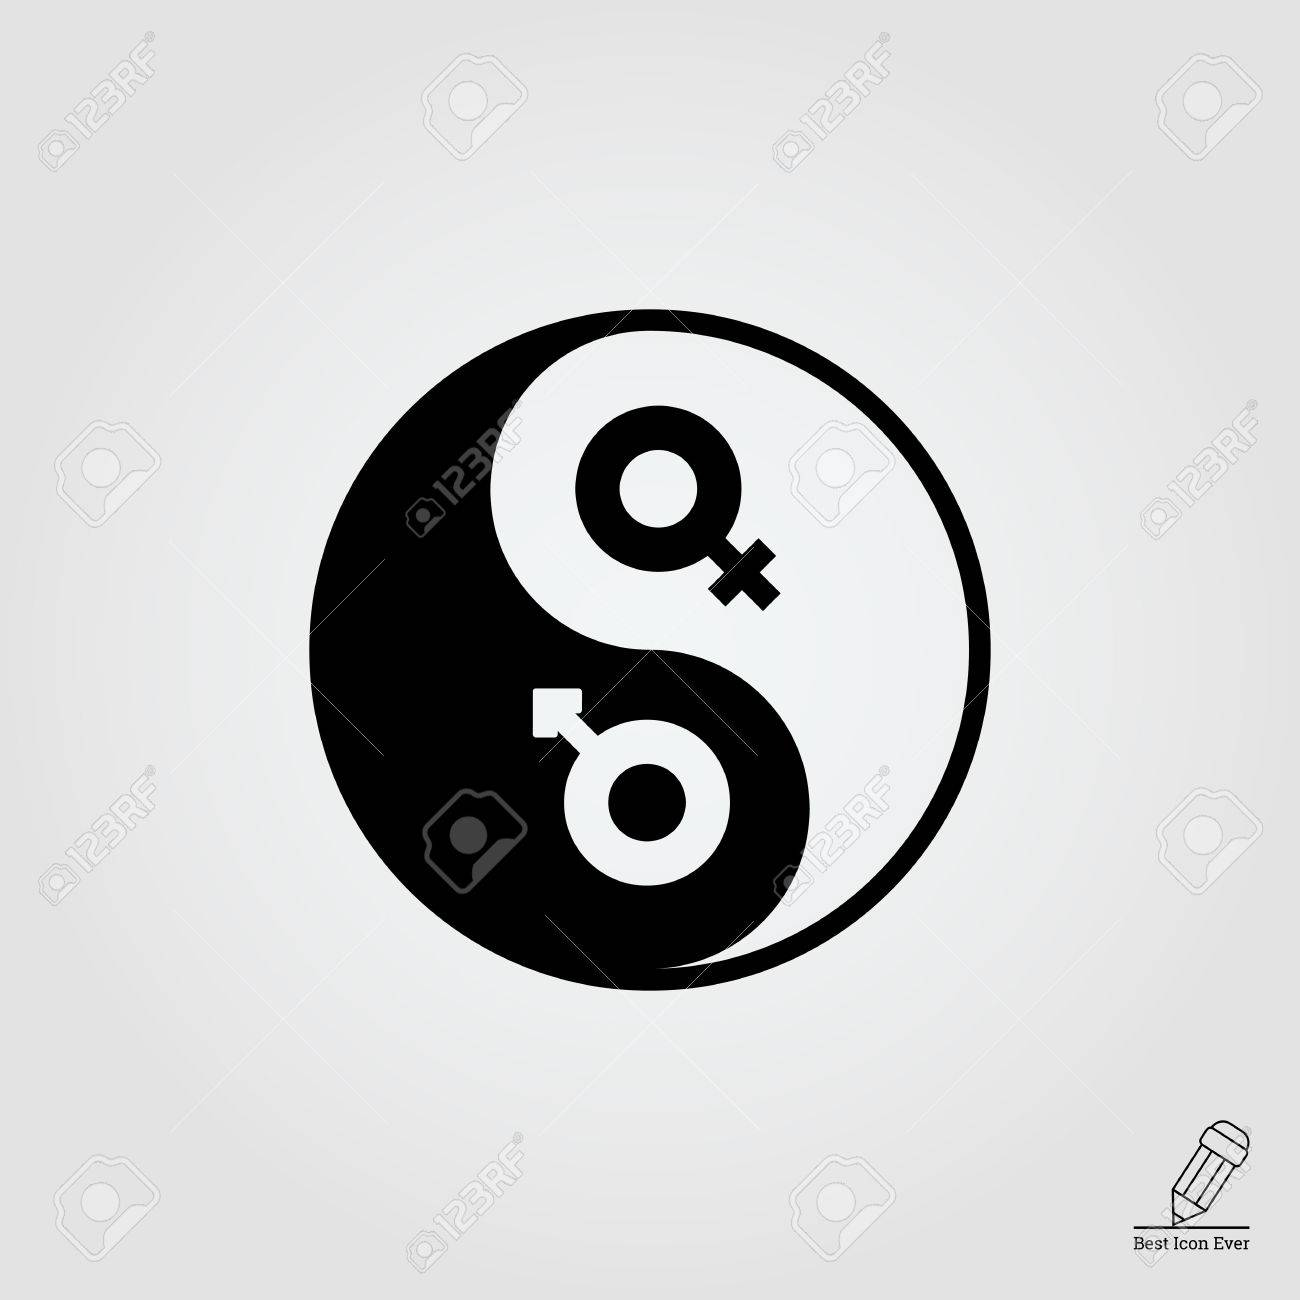 Vector icon of yin yang symbol with male and female gender signs vector icon of yin yang symbol with male and female gender signs stock vector 46863589 biocorpaavc